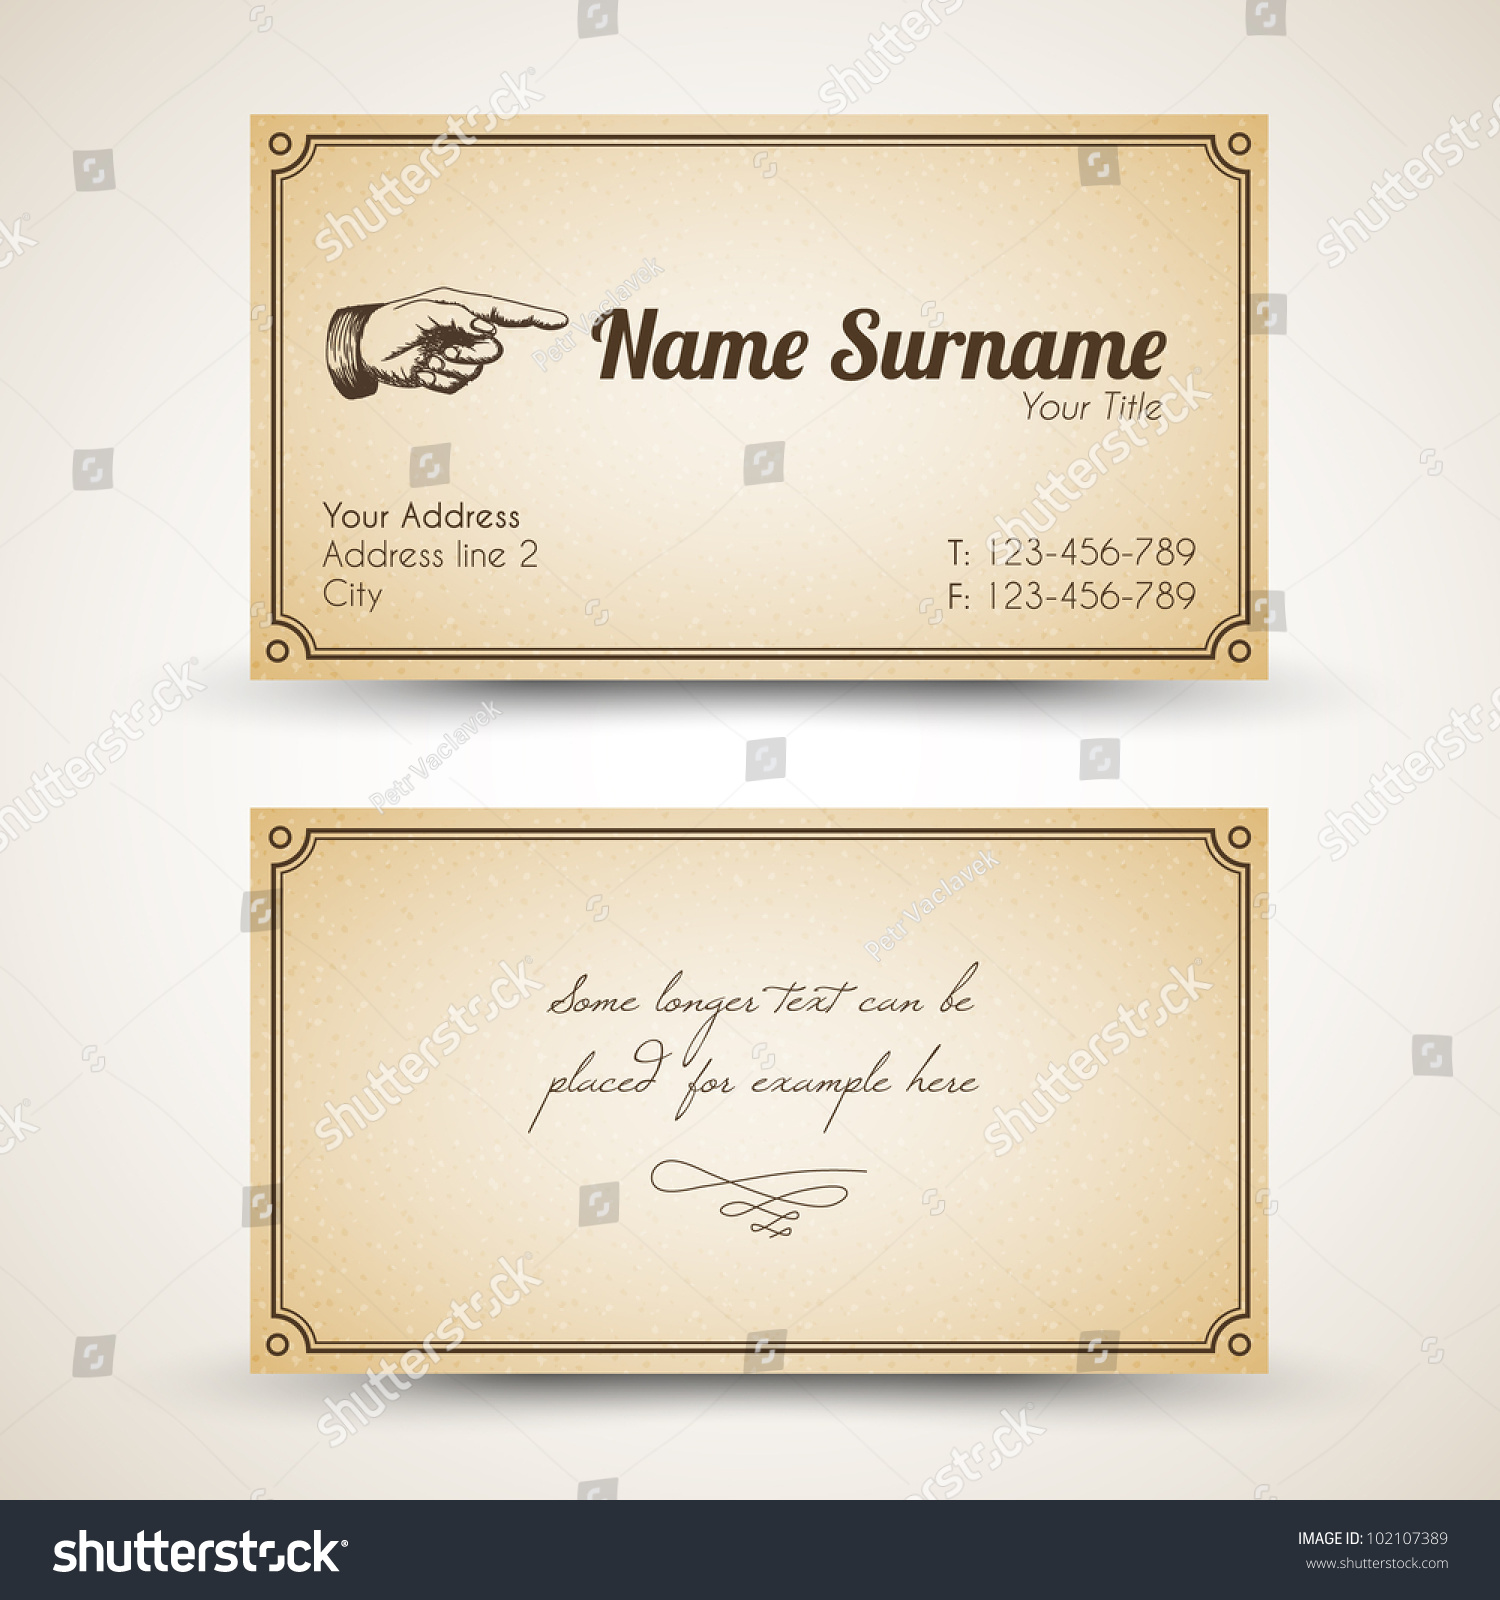 Business card watermark images free business cards business card watermark choice image free business cards vector oldstyle retro vintage business card stock vector magicingreecefo Choice Image